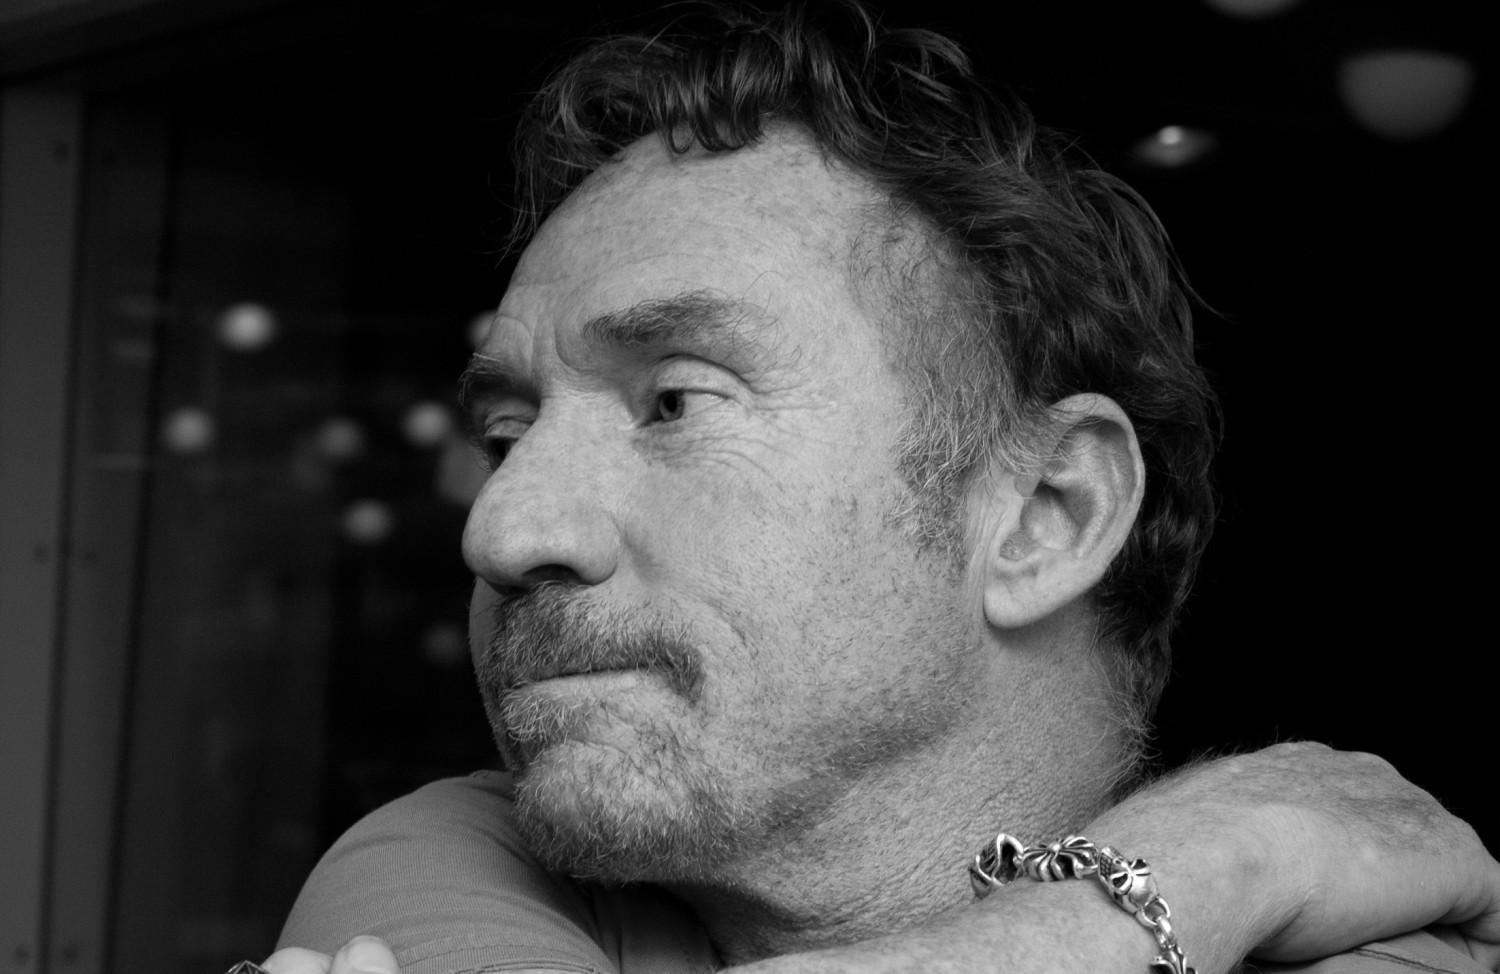 Danny Bonaduce Desktop wallpaper